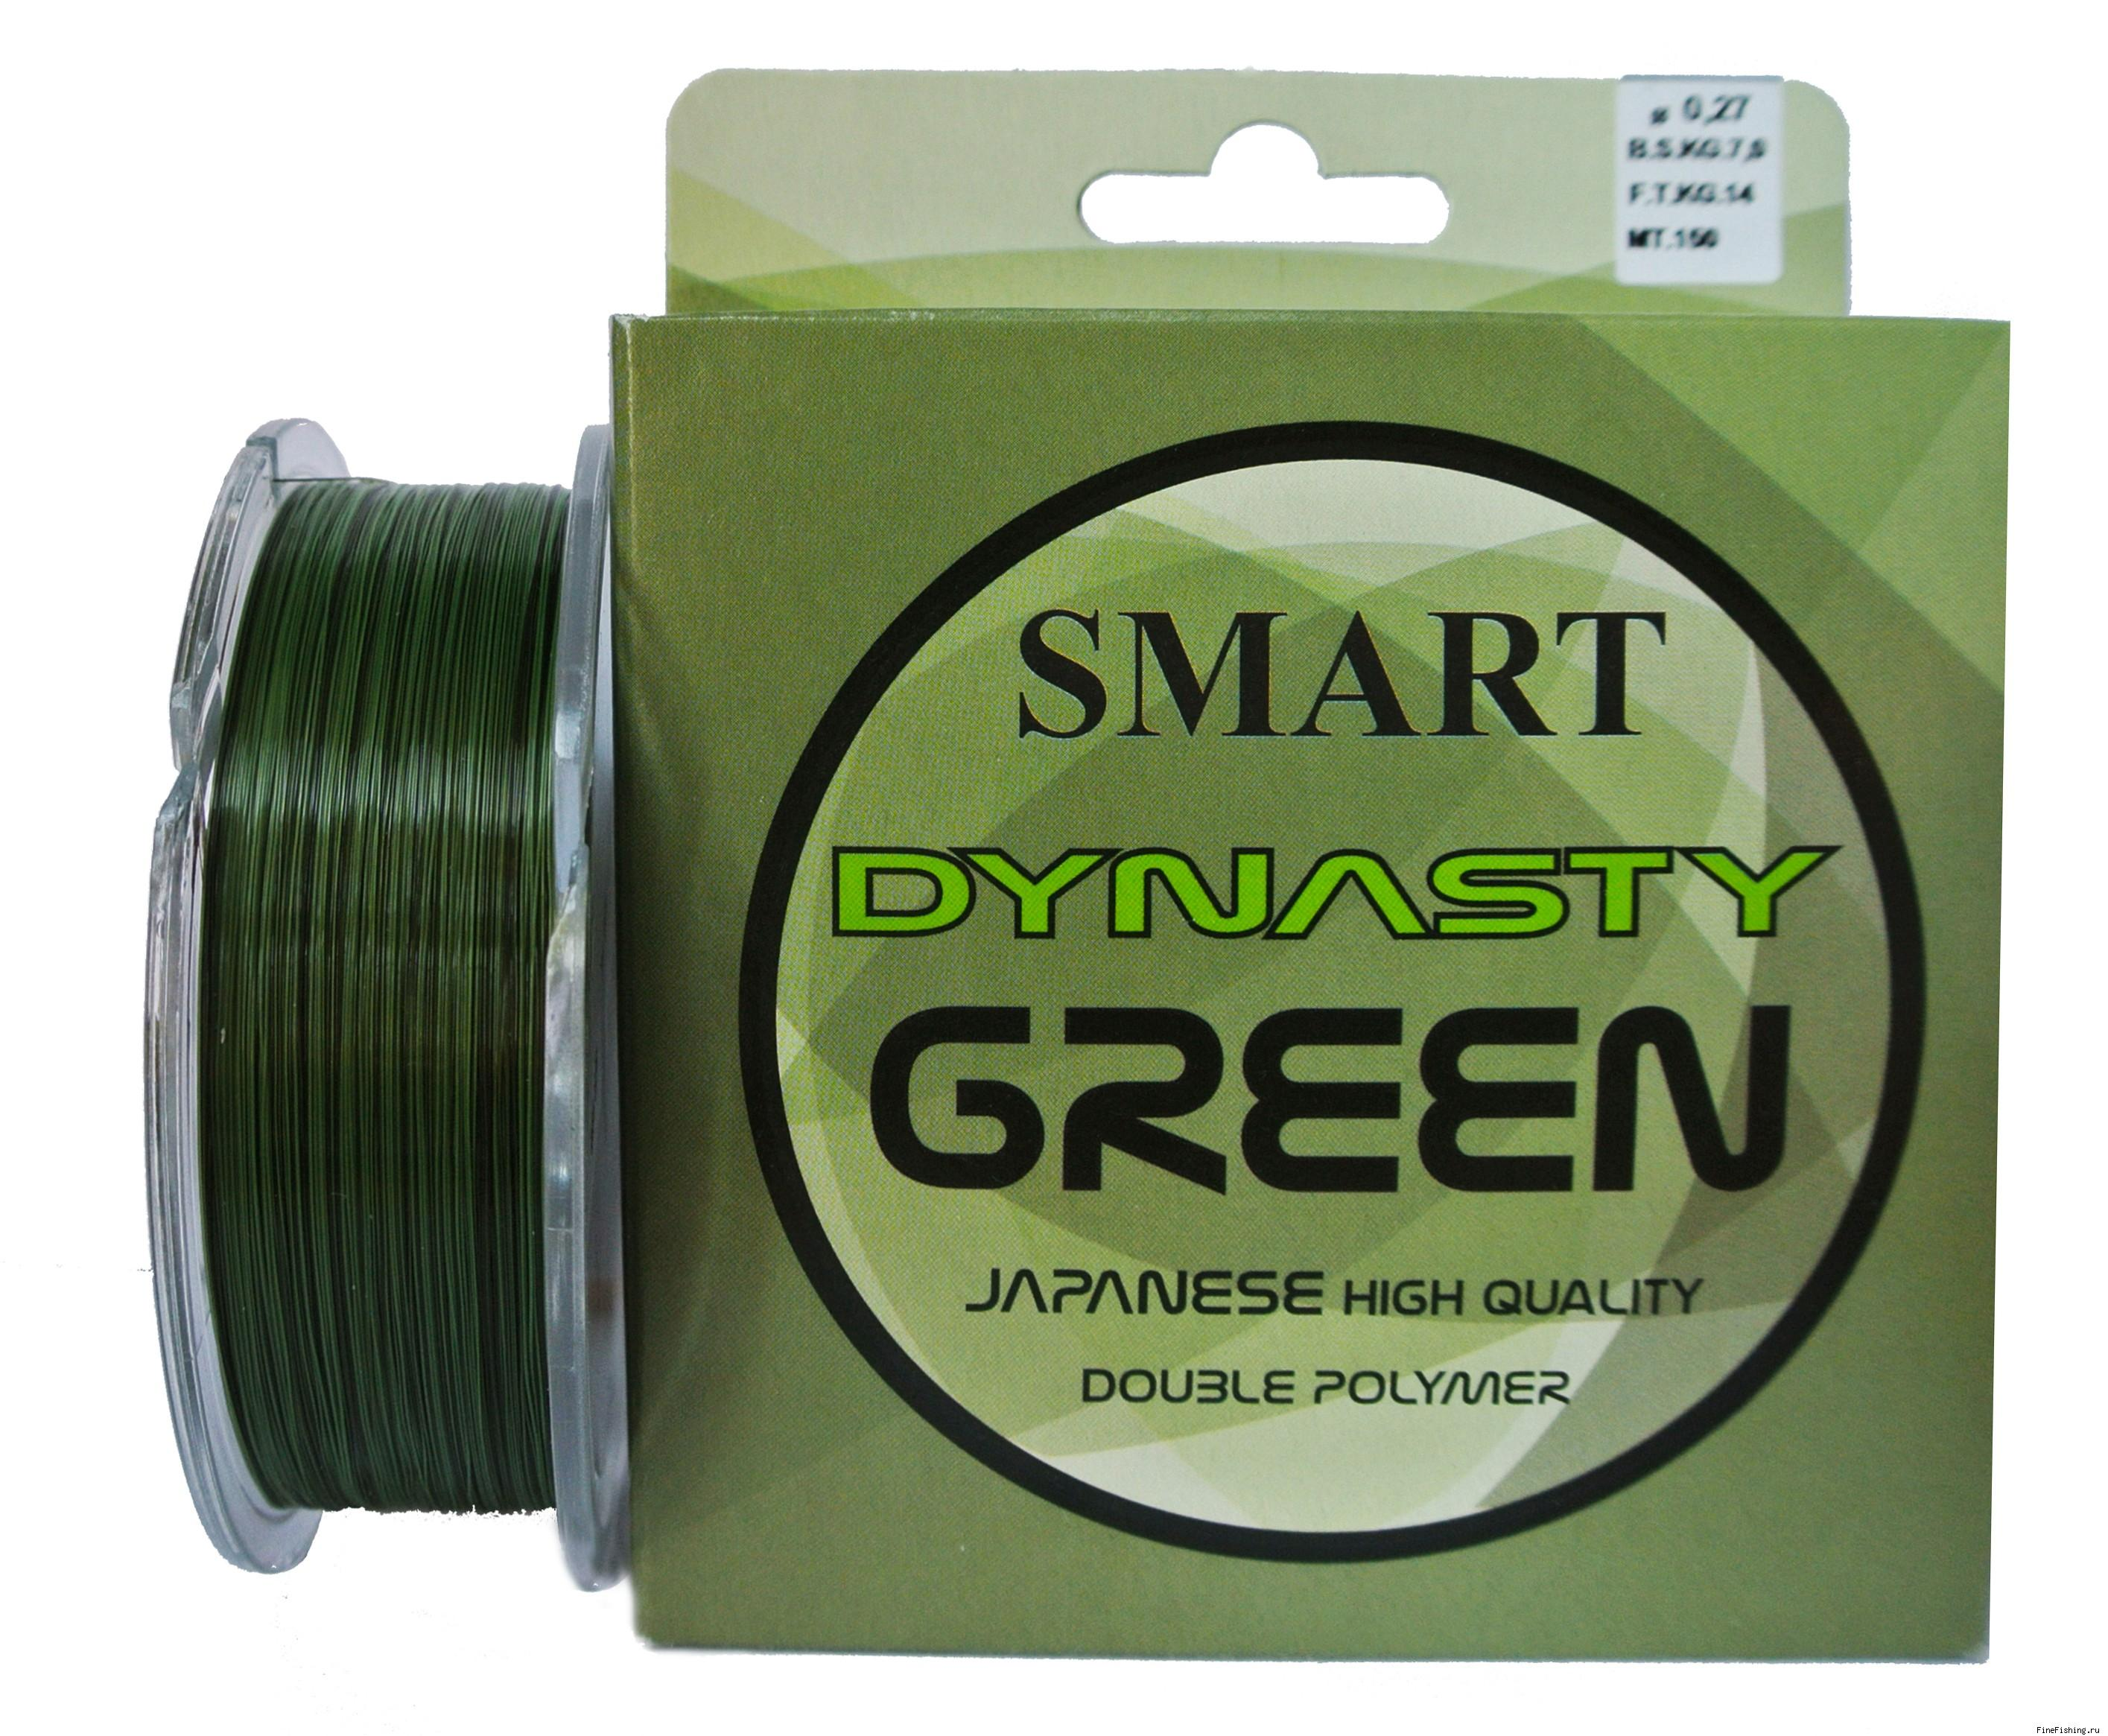 Леска Maver Smart Dynasty Green 150 м, 0.18 мм, 3кг